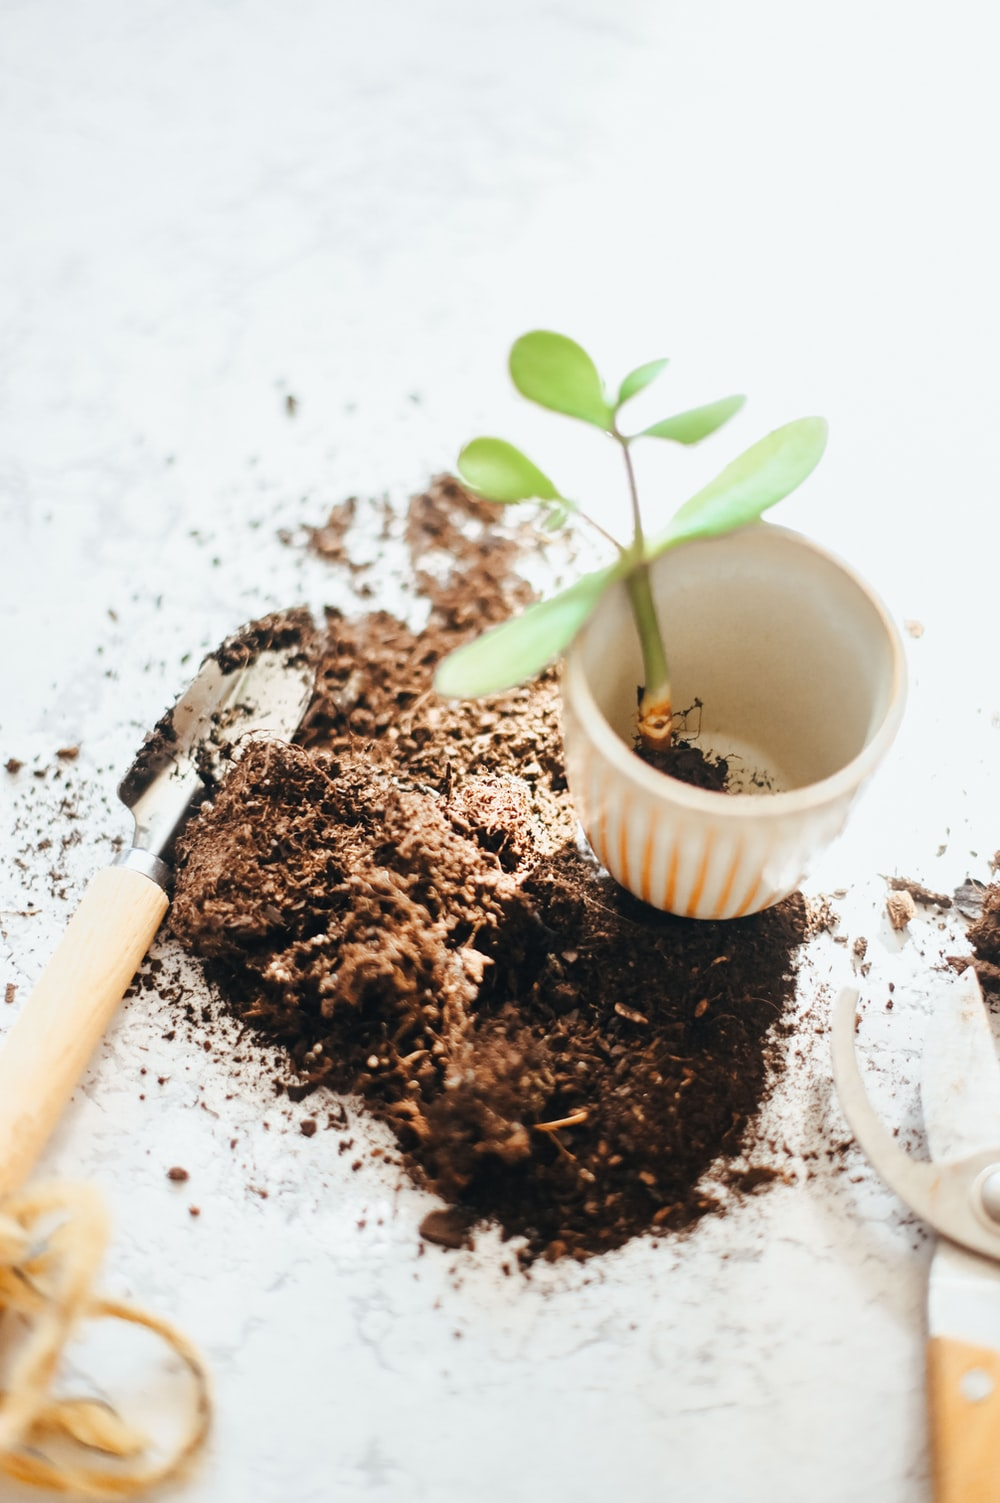 white ceramic cup with brown powder and green plant